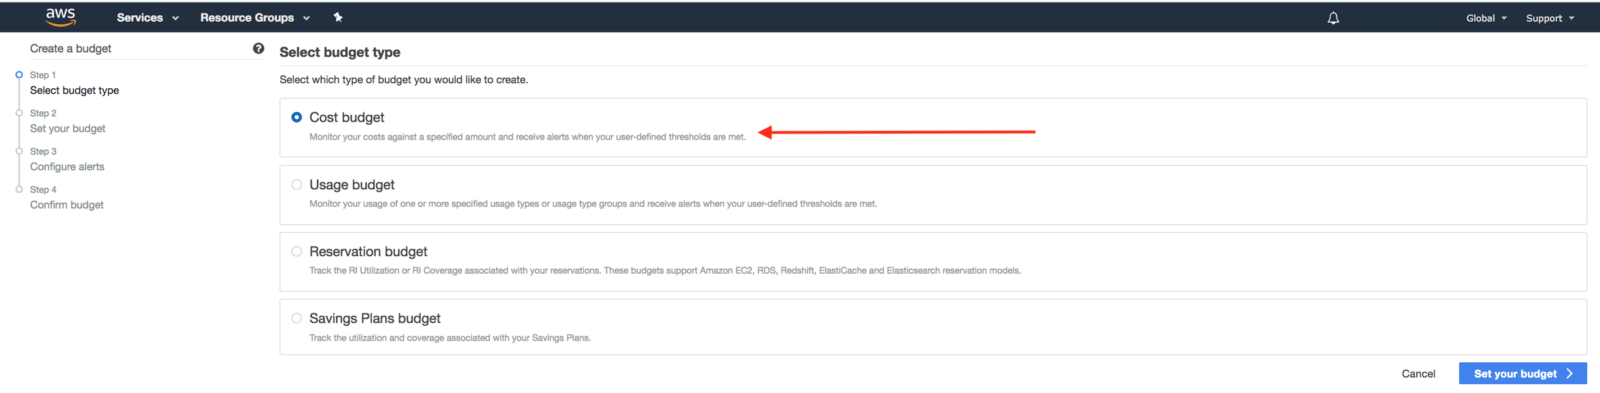 AWS Create a budget, select budget type, cost budget